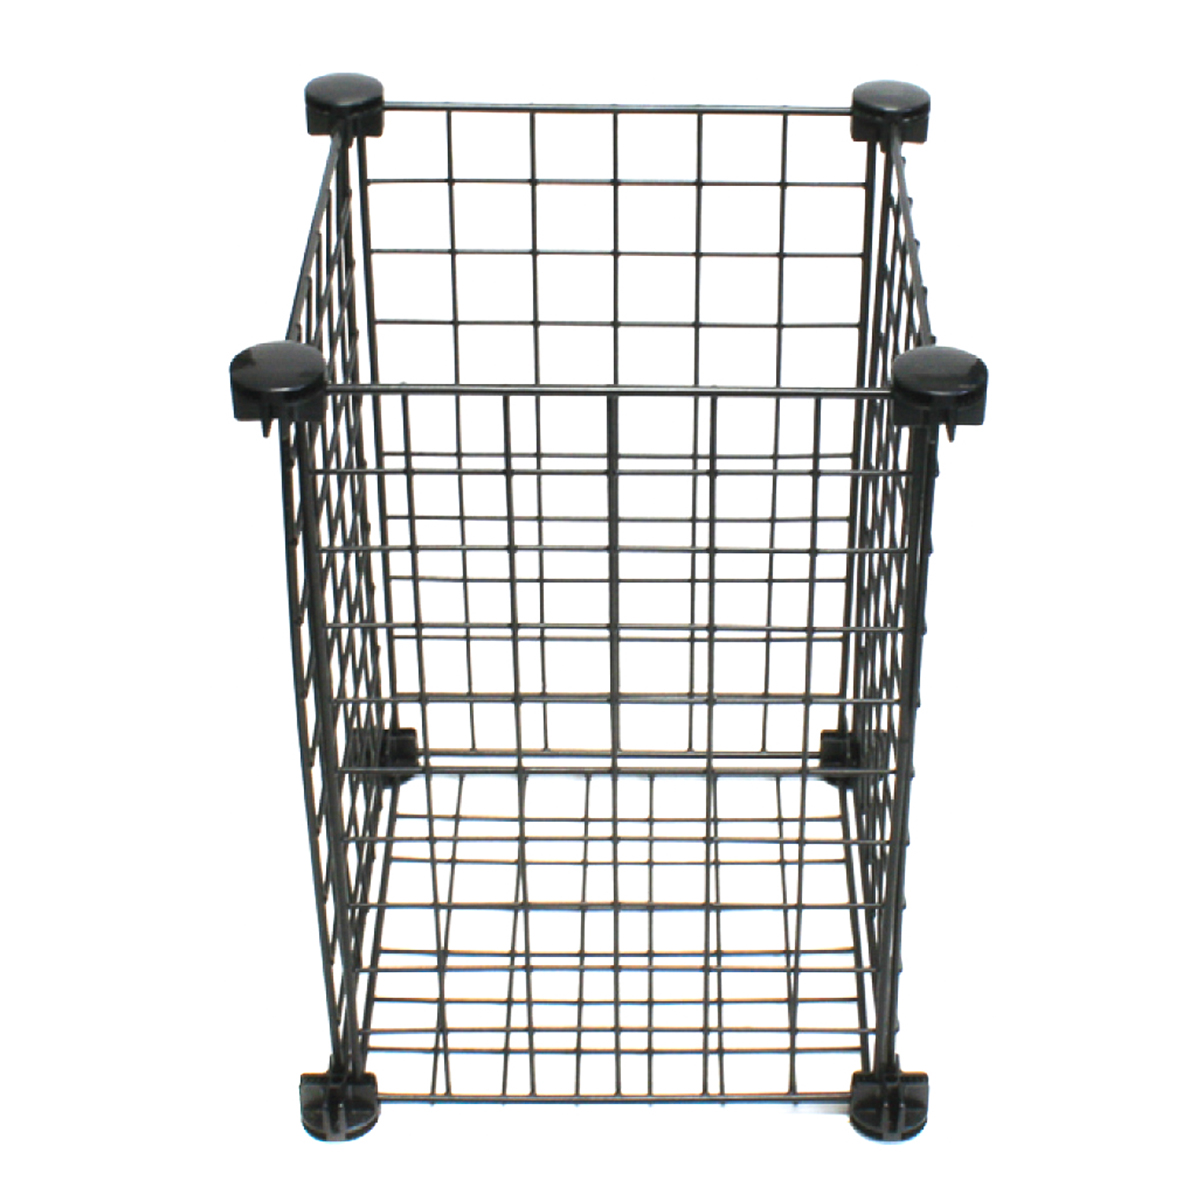 Single Slot Wire Basket Ideal for Hub Caps and Lug Nut Covers